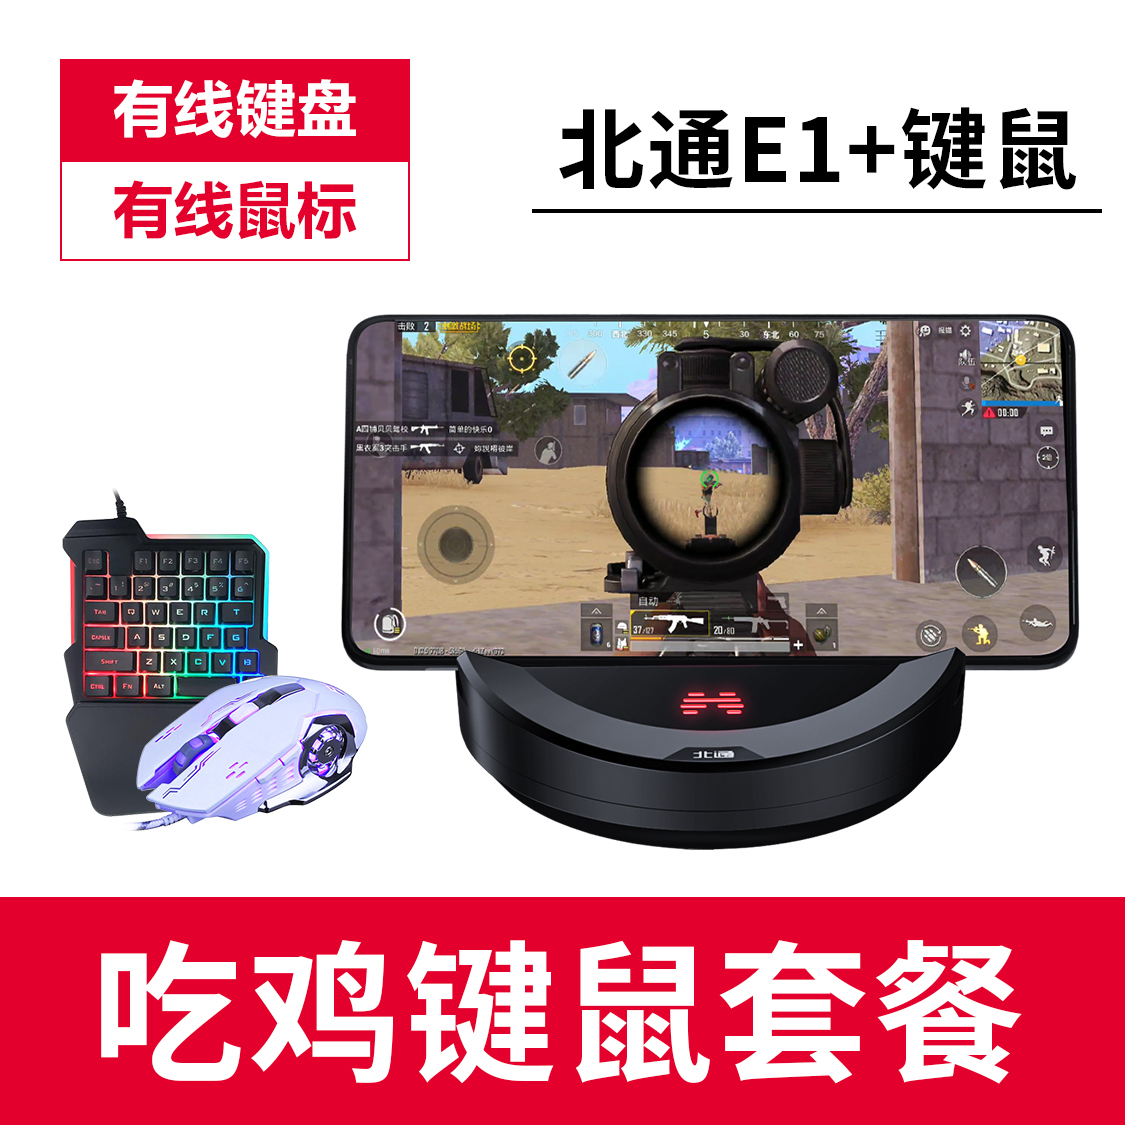 Beitong E1 chicken eating artifact keyboard mouse peace elite suit automatic pressure grab stimulation station auxiliary handle hand tour throne Android Tablet Apple peripheral special mobile phone call of duty